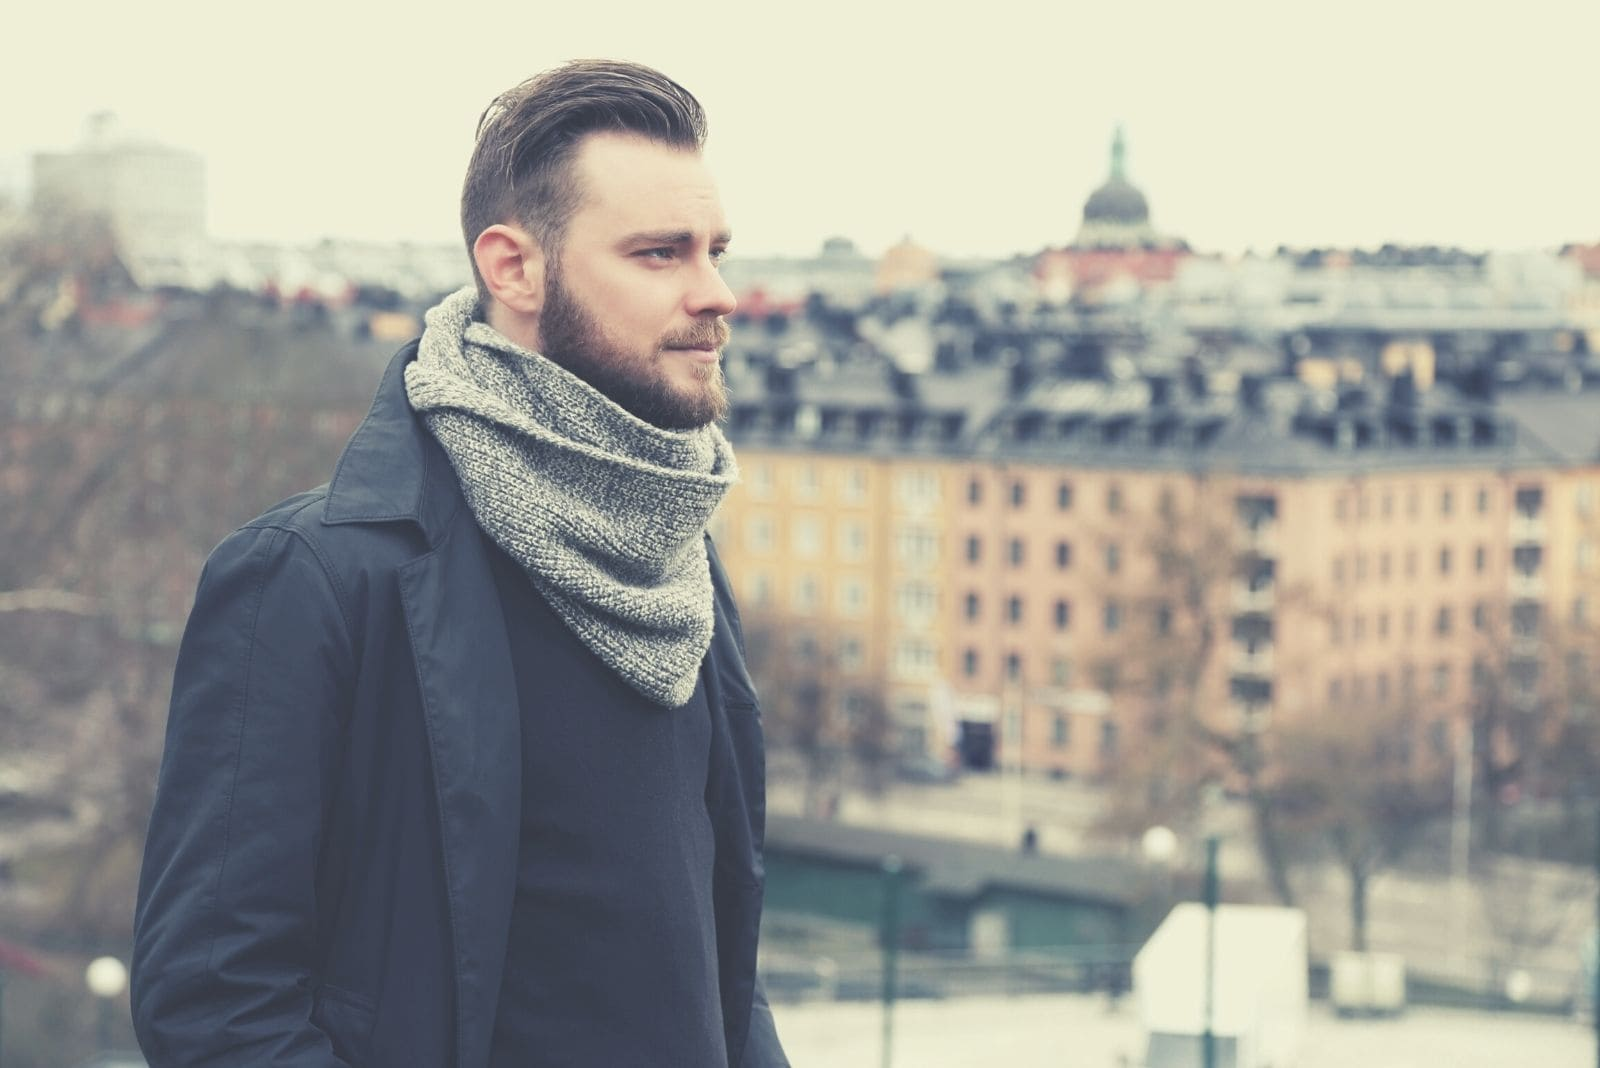 lonely pensive man with a grey scarf standing with the city behind